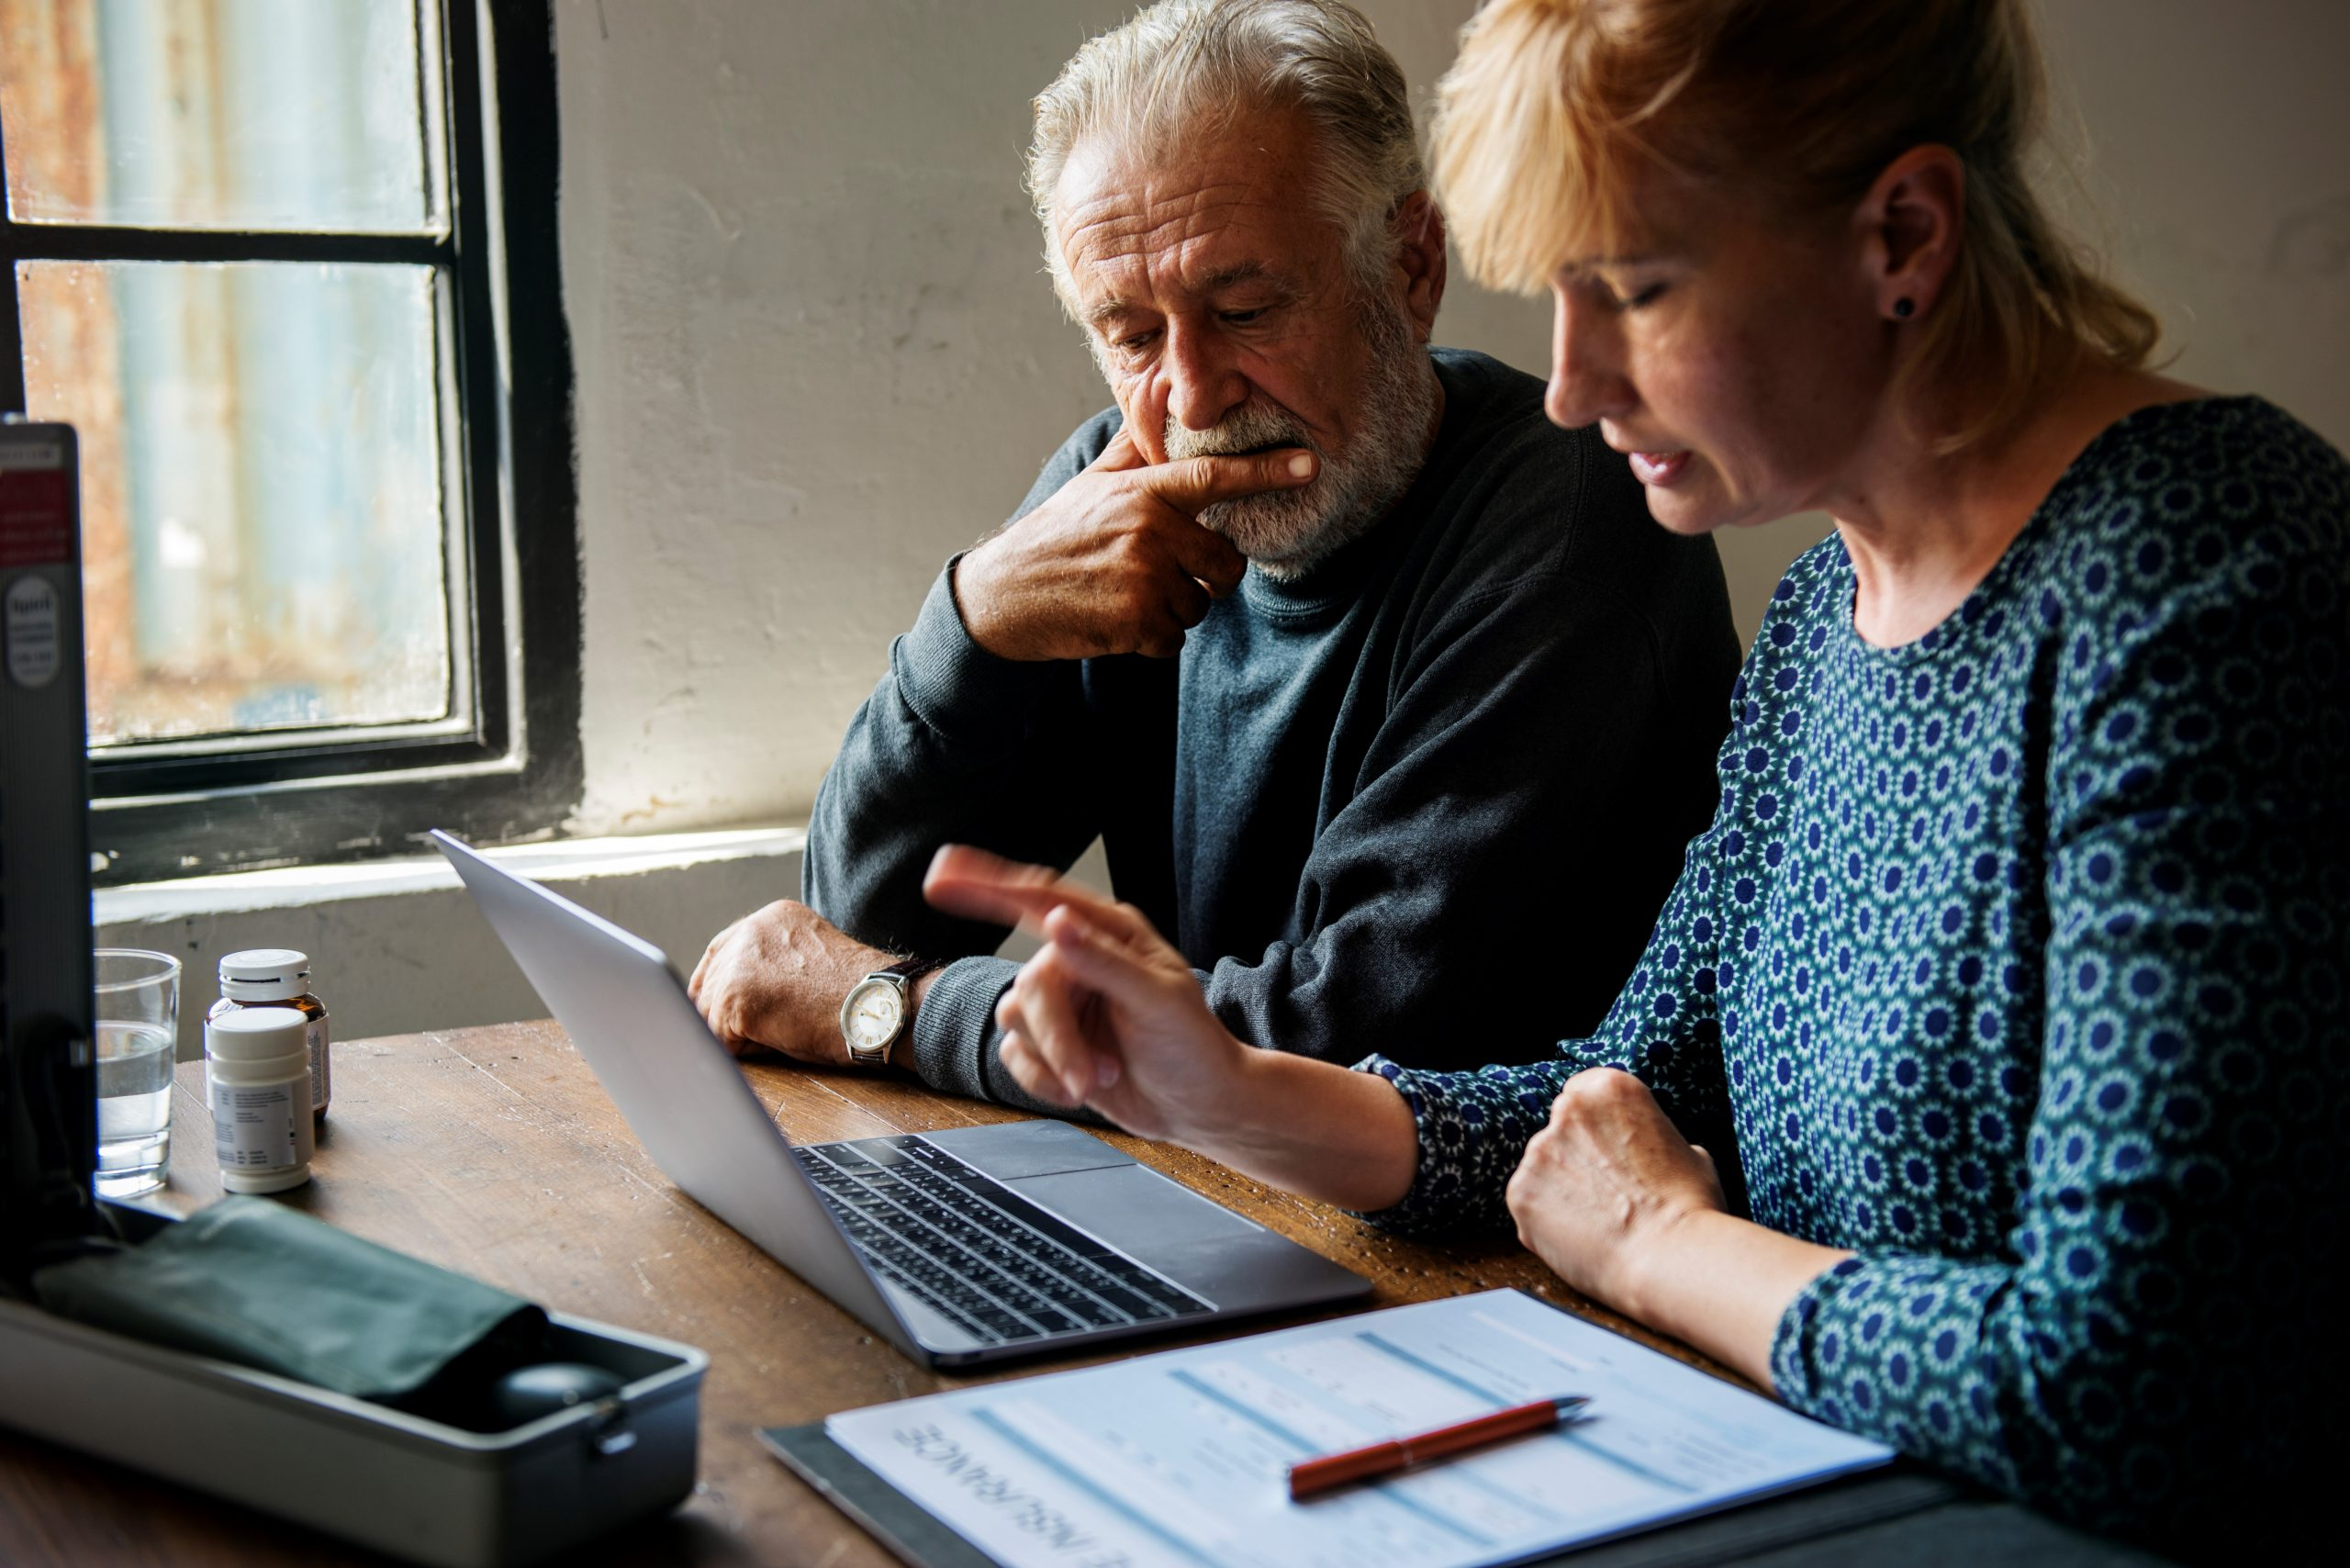 Man and woman look thoughtfully at a laptop screen